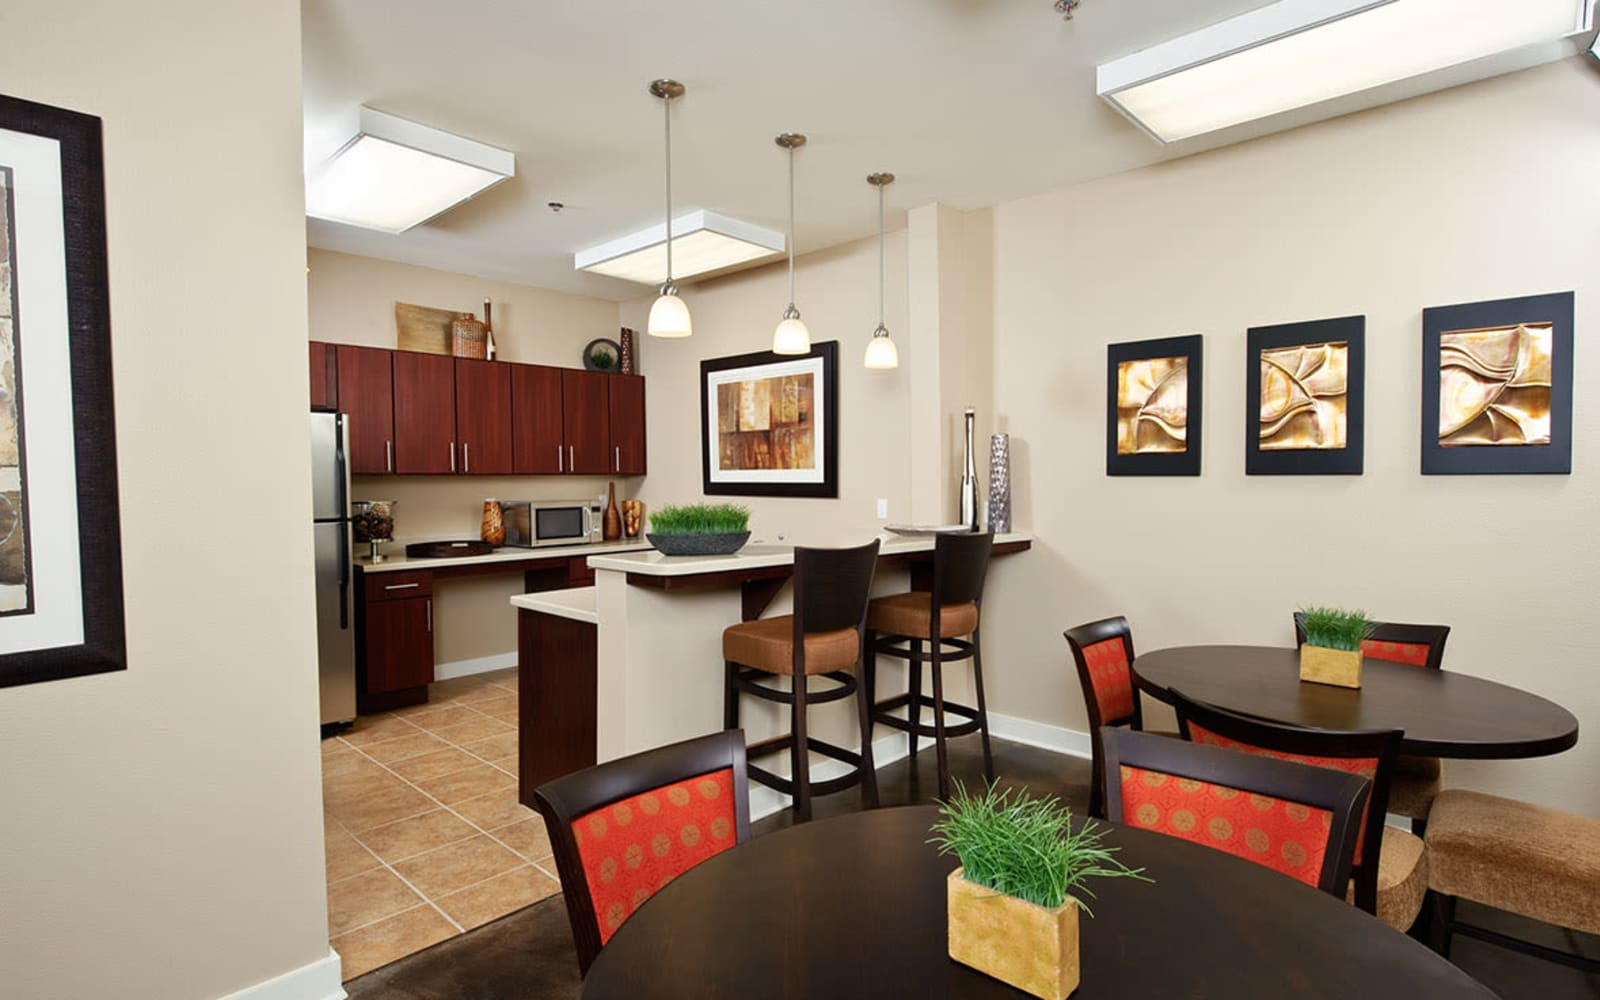 Kitchen and living room at Crescent Club in New Orleans, Louisiana